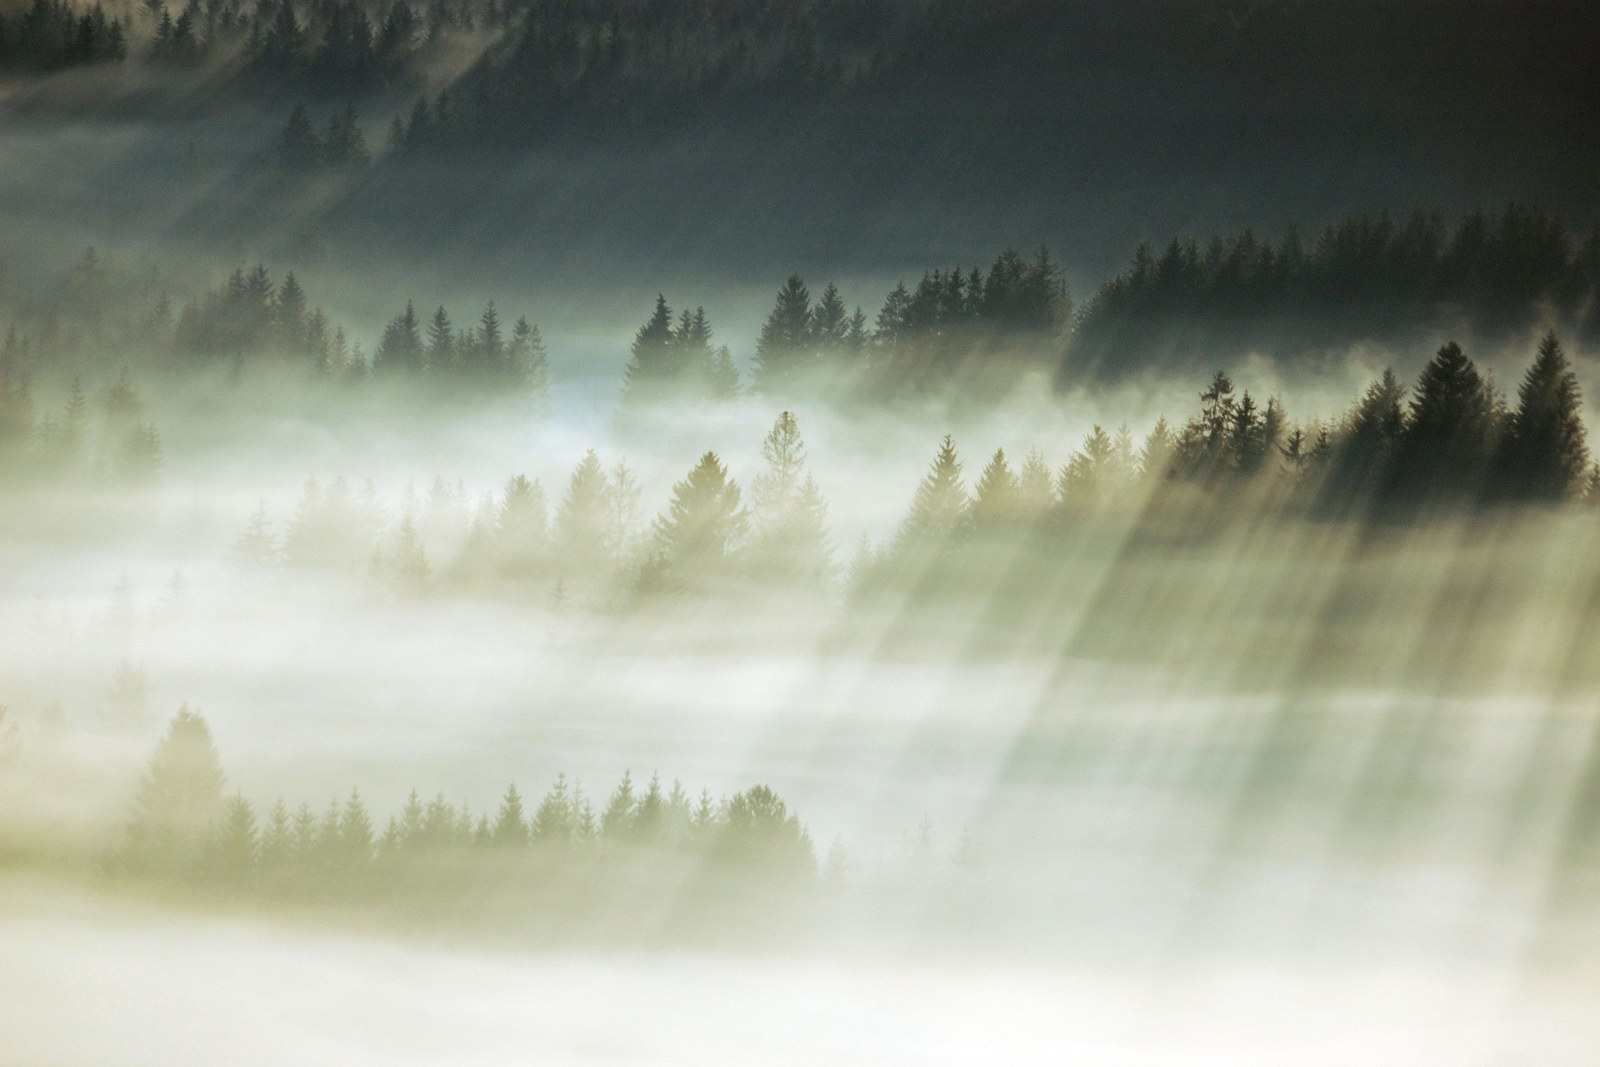 13 Beautiful Photos Of The Beskidy Mountains In Poland - BuzzFeed News